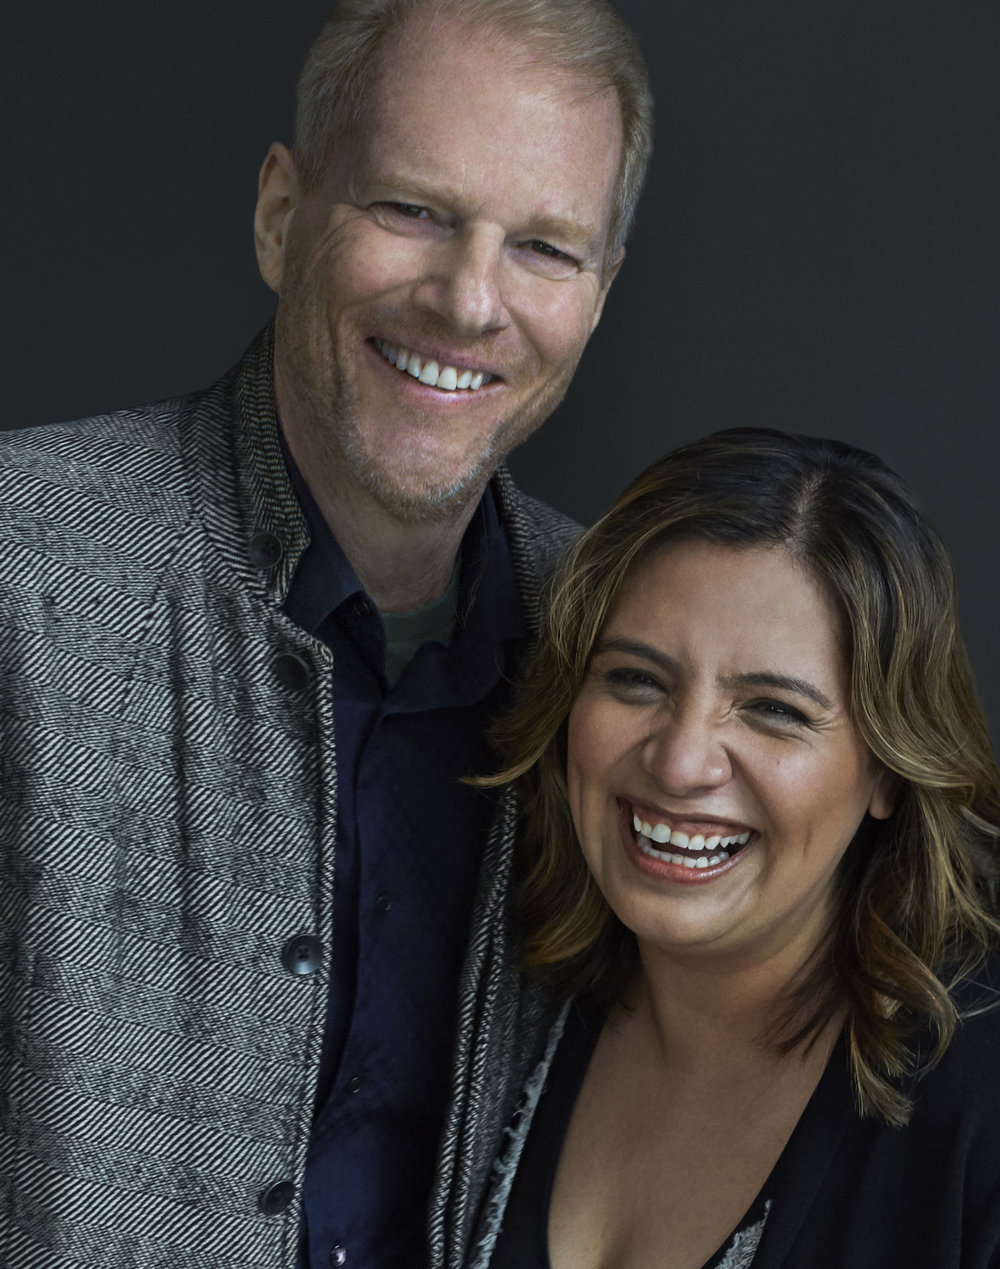 Noah Emmerich & Cristela Alonzo /  ITS harassment campaign